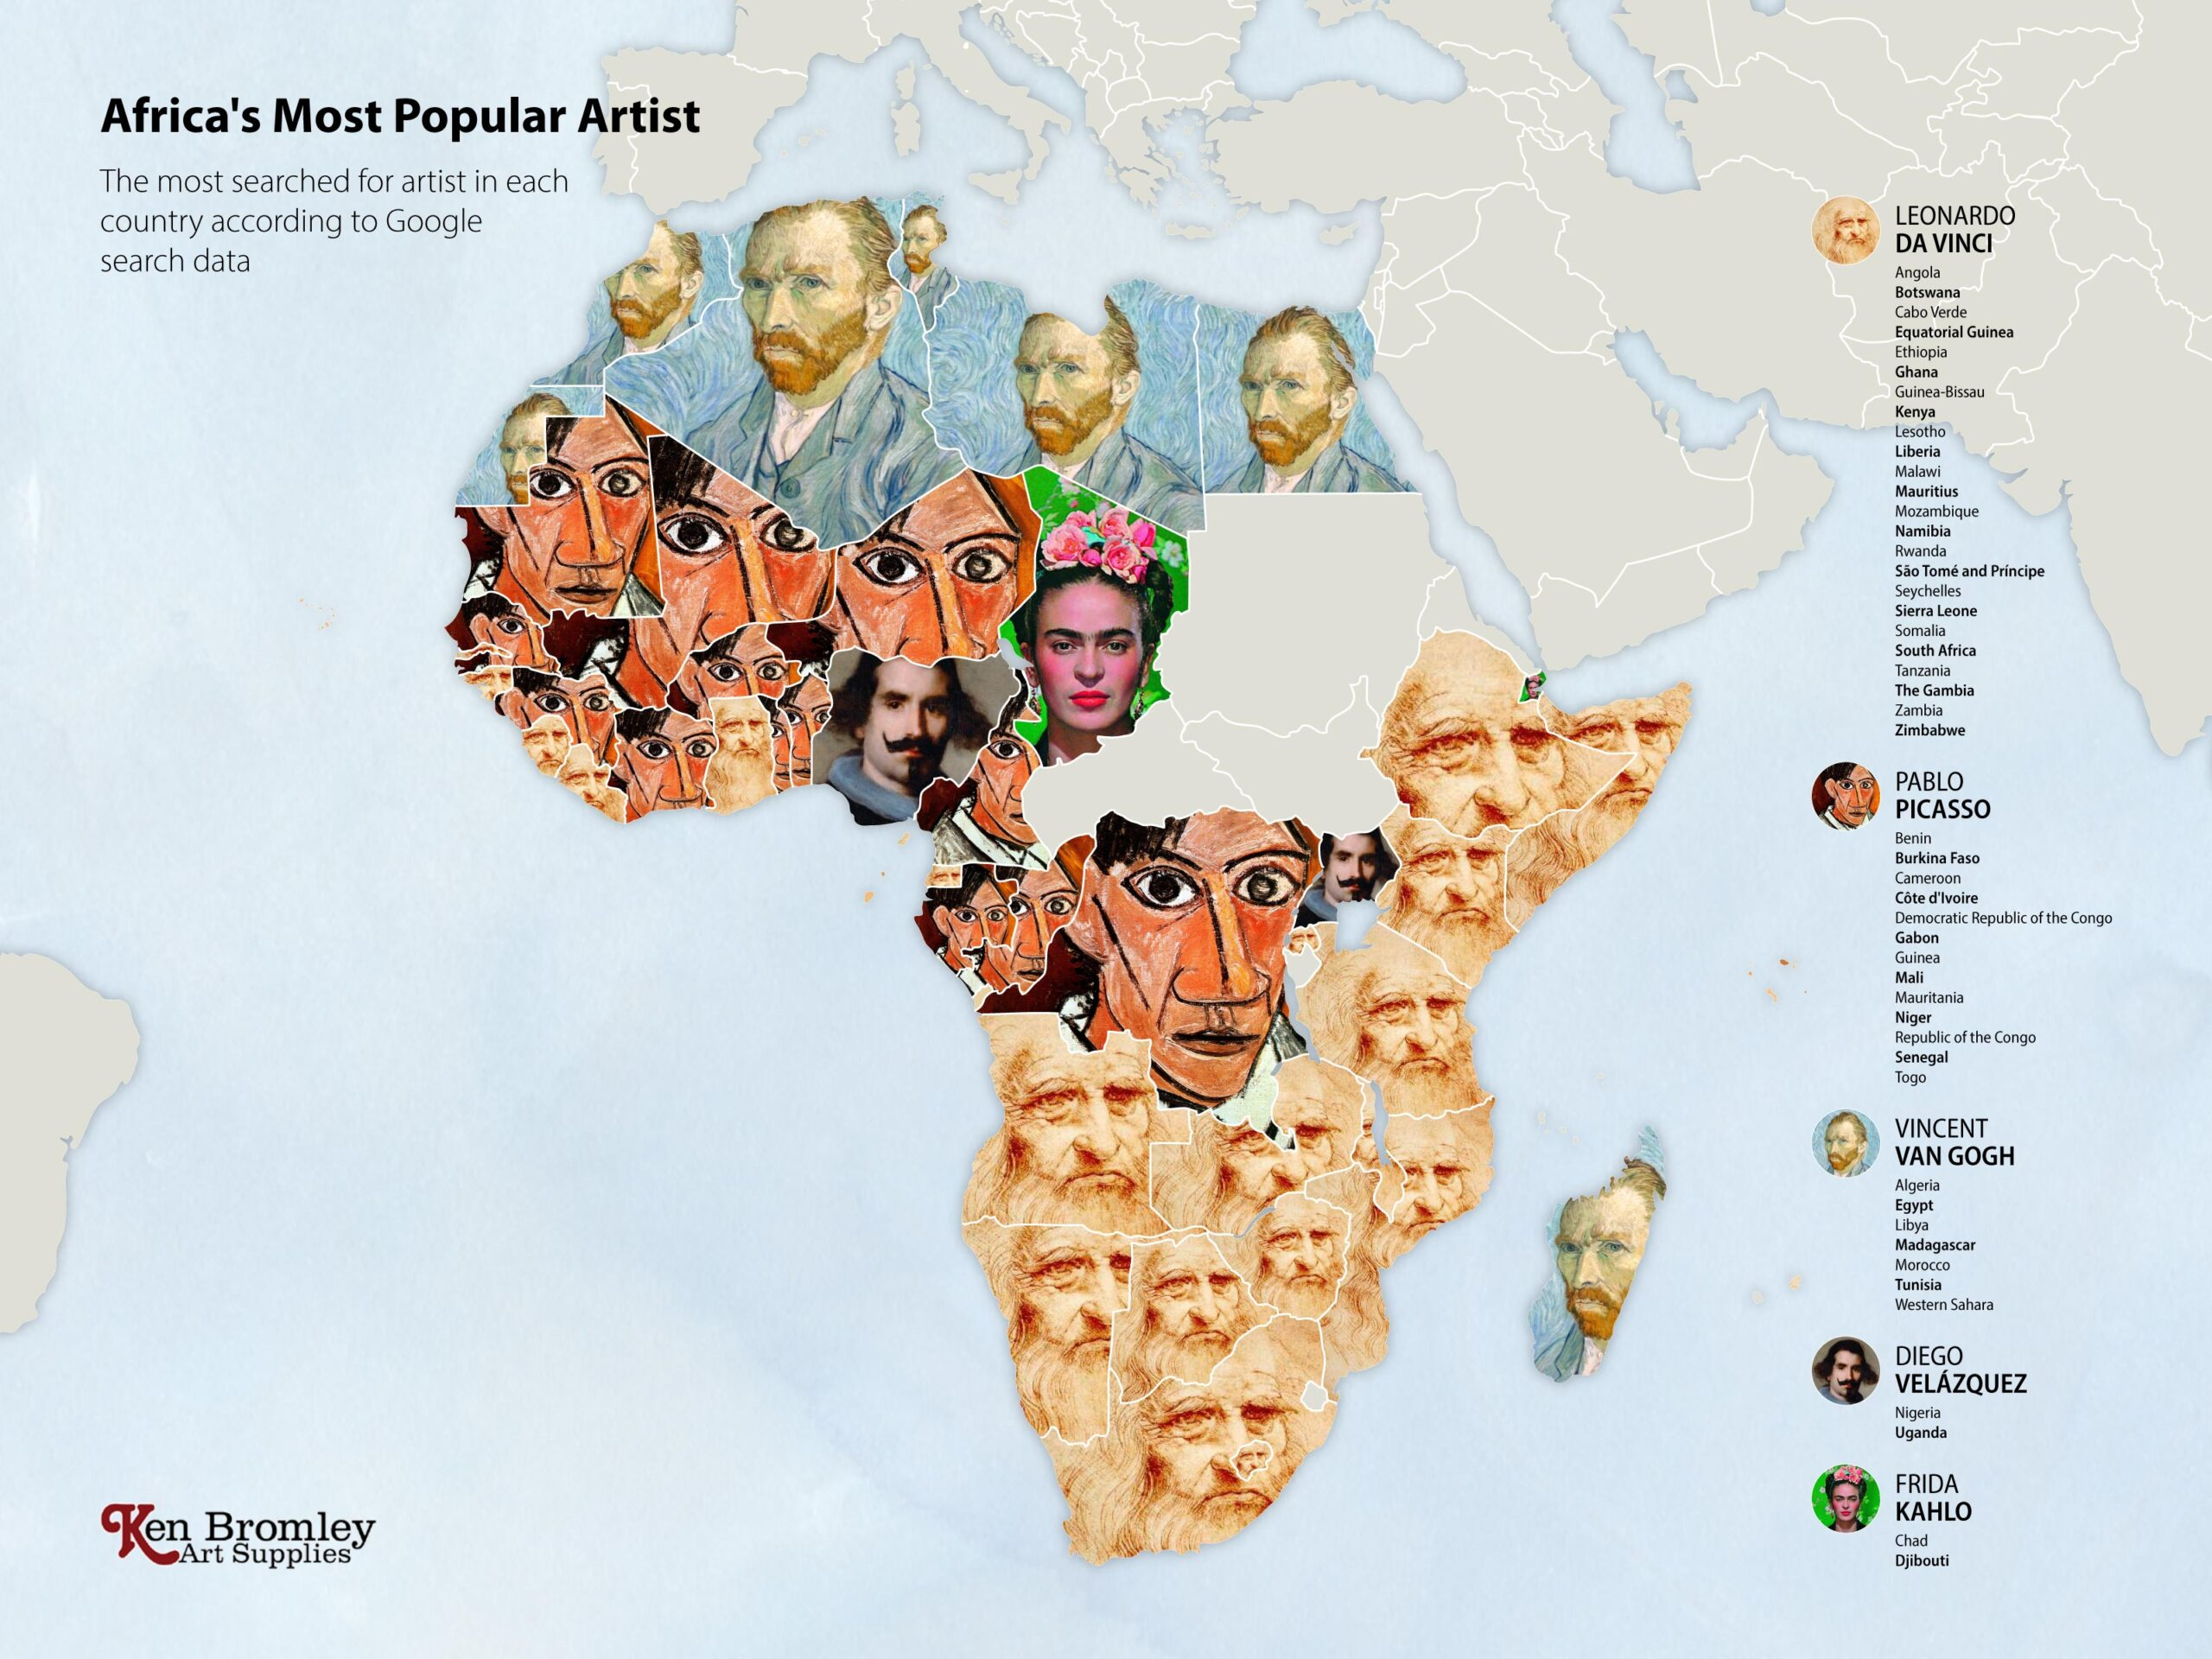 The most popular artists in Africa